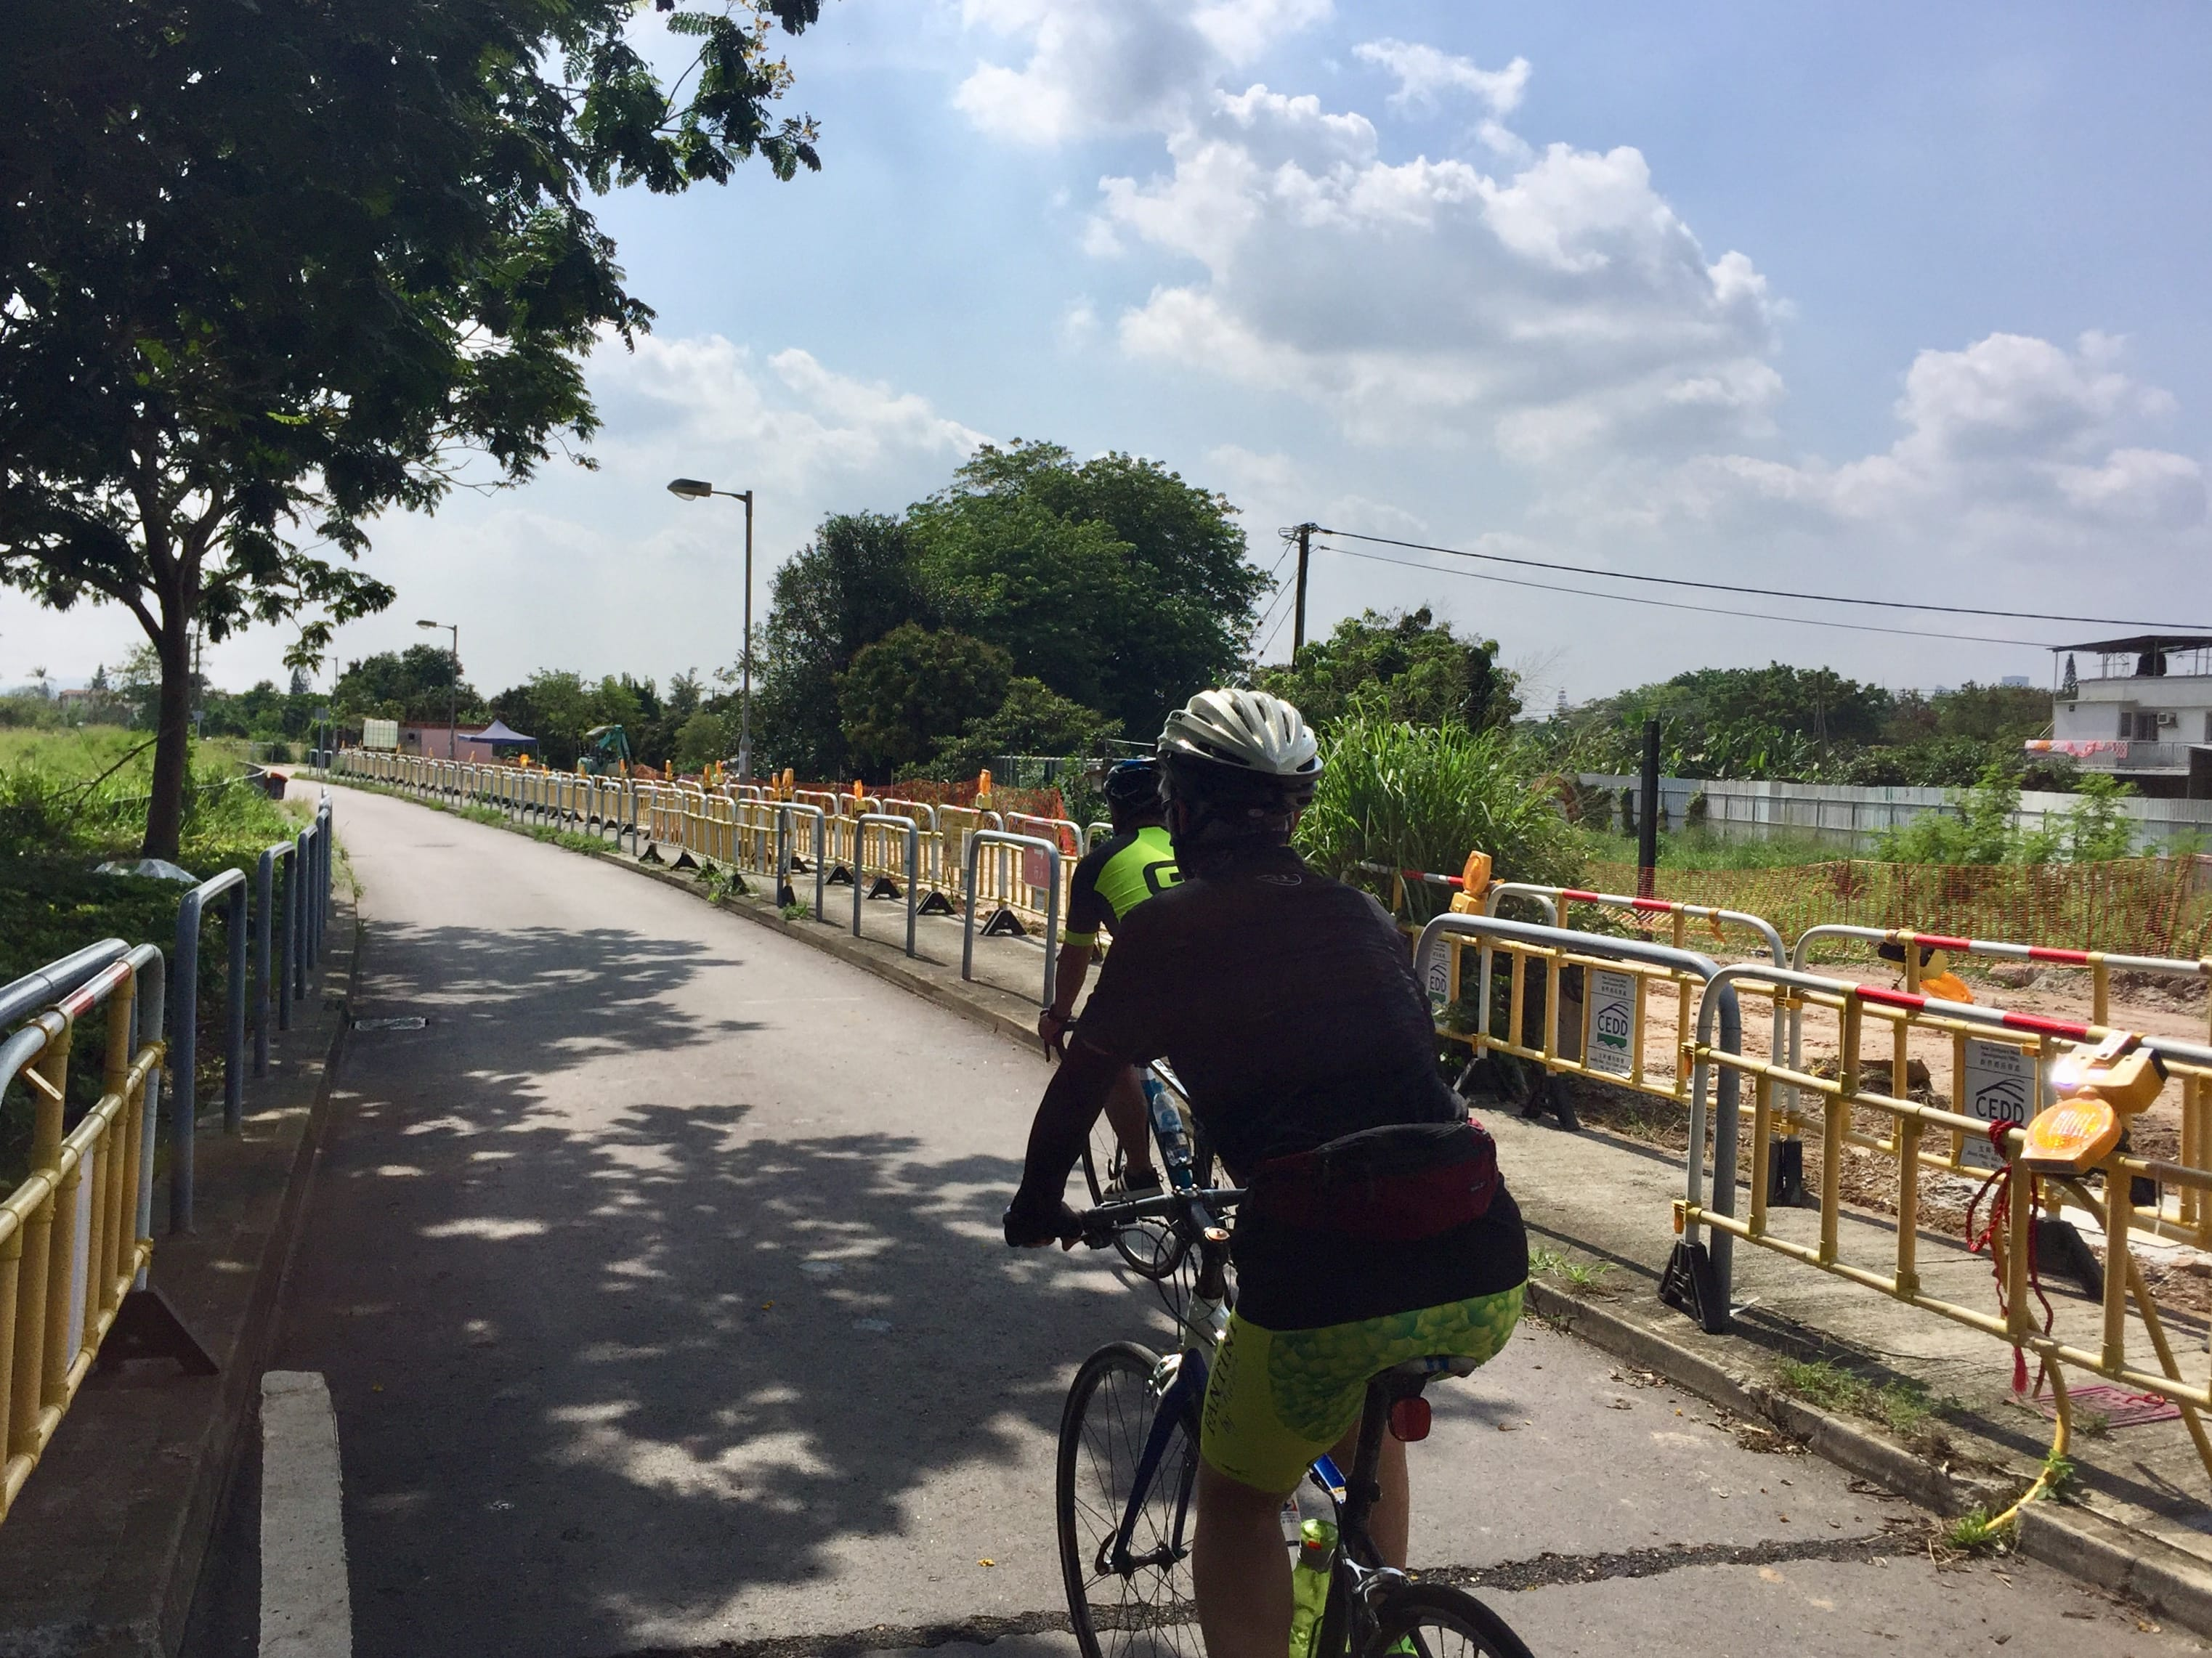 Riding along Yau Pok Road to today's destination